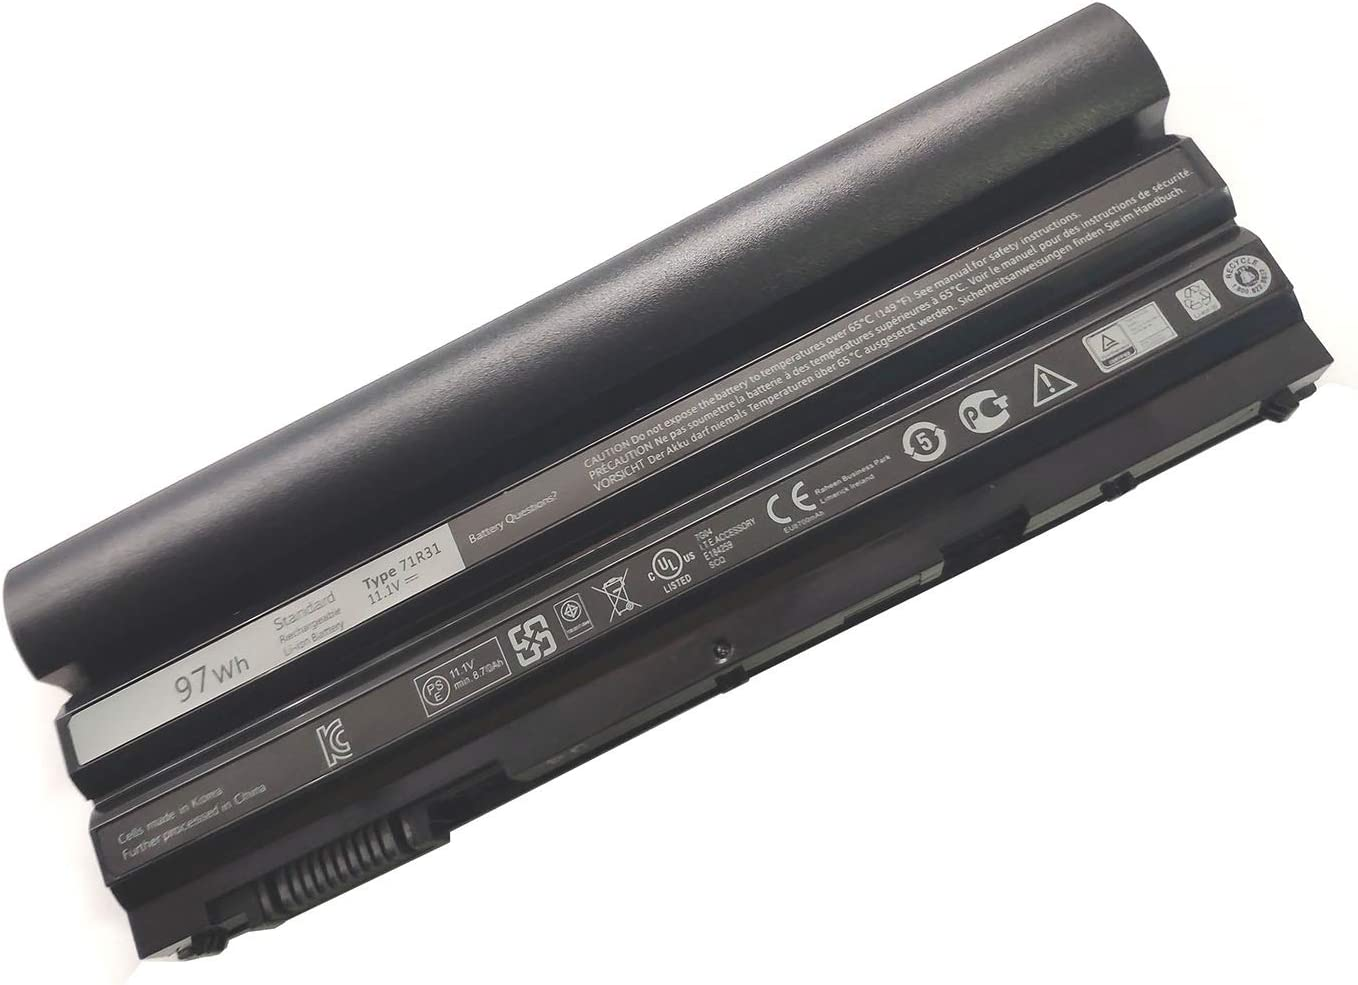 EndlessBattery 71R31 Replacement Laptop Battery Compatible with Dell Latitude E6540 Latitude E6440 462-3678 ATG Precision M2800 Laptop G5M10(97Wh 11.1V 9cell)